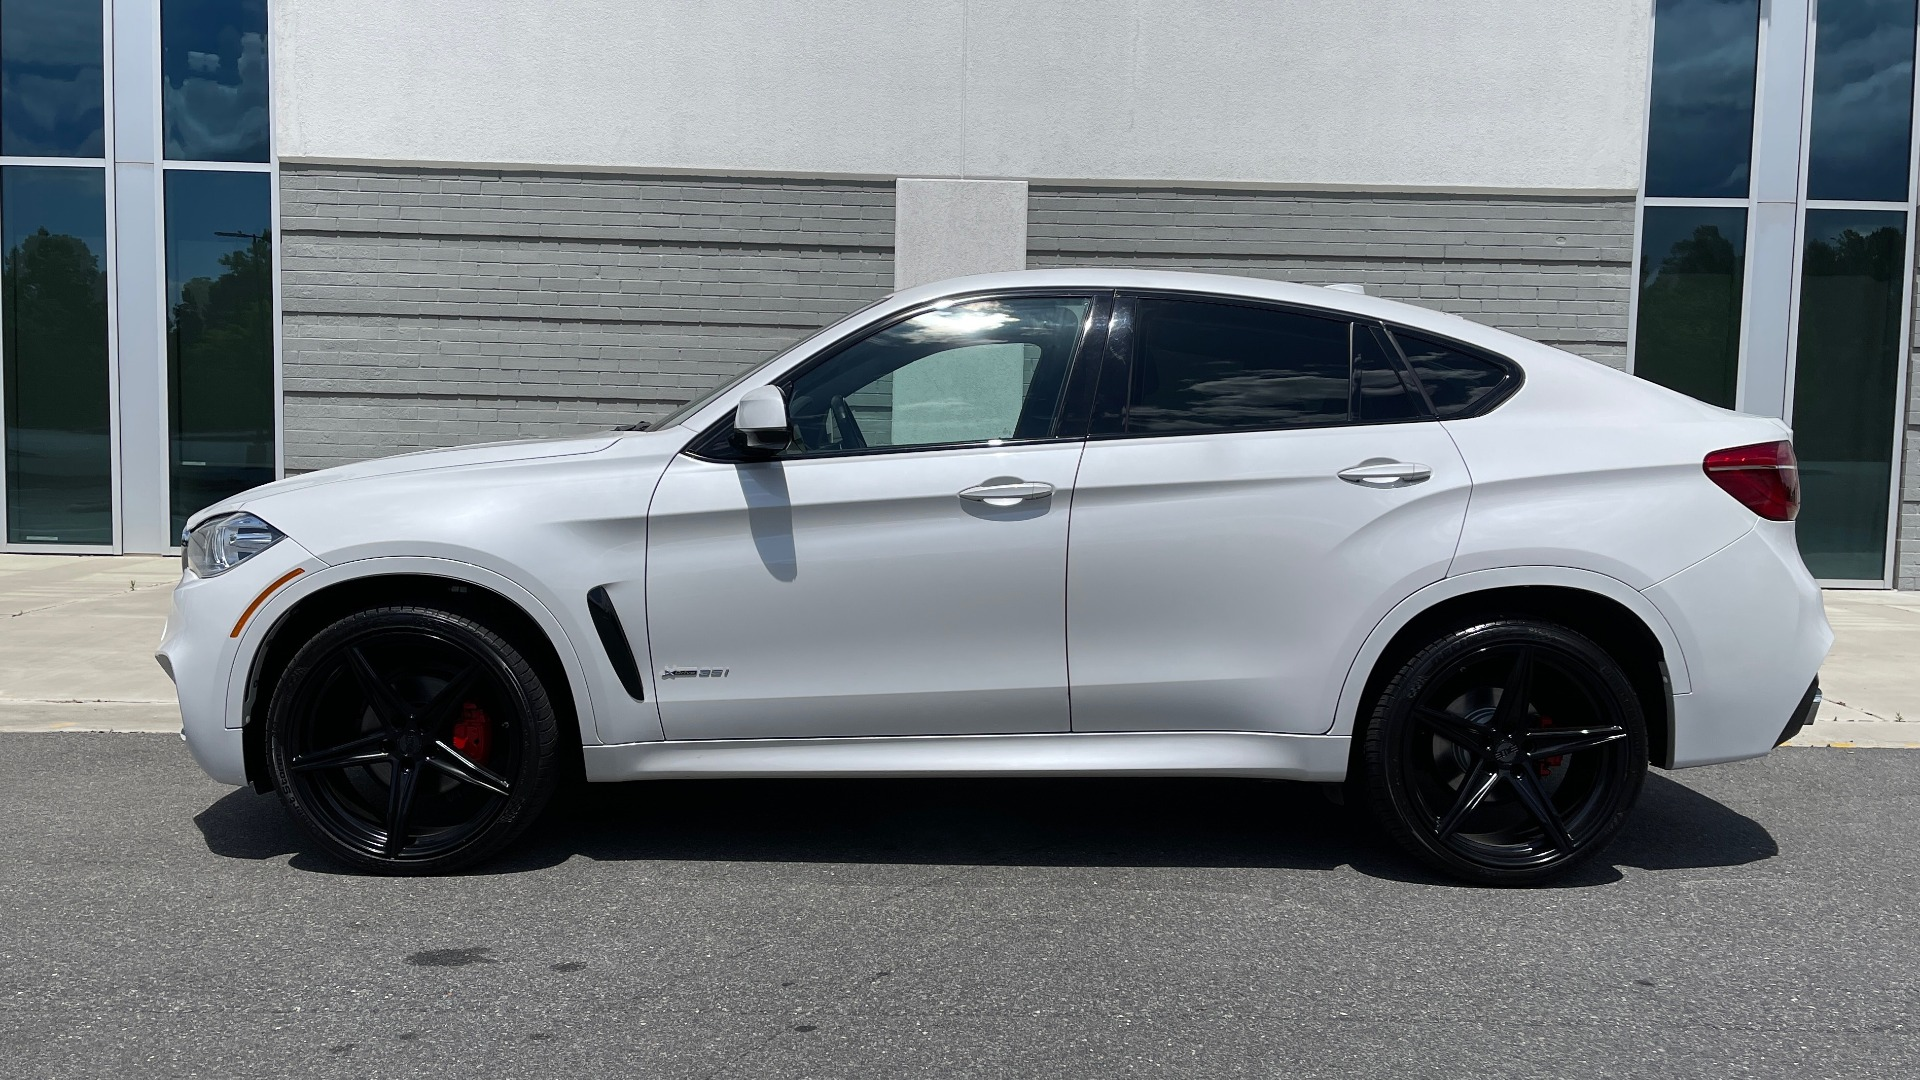 Used 2018 BMW X6 XDRIVE35I M-SPORT / NAV / DRVR ASST PLUS / ADAPT M-SUSP / REARVIEW for sale Sold at Formula Imports in Charlotte NC 28227 5